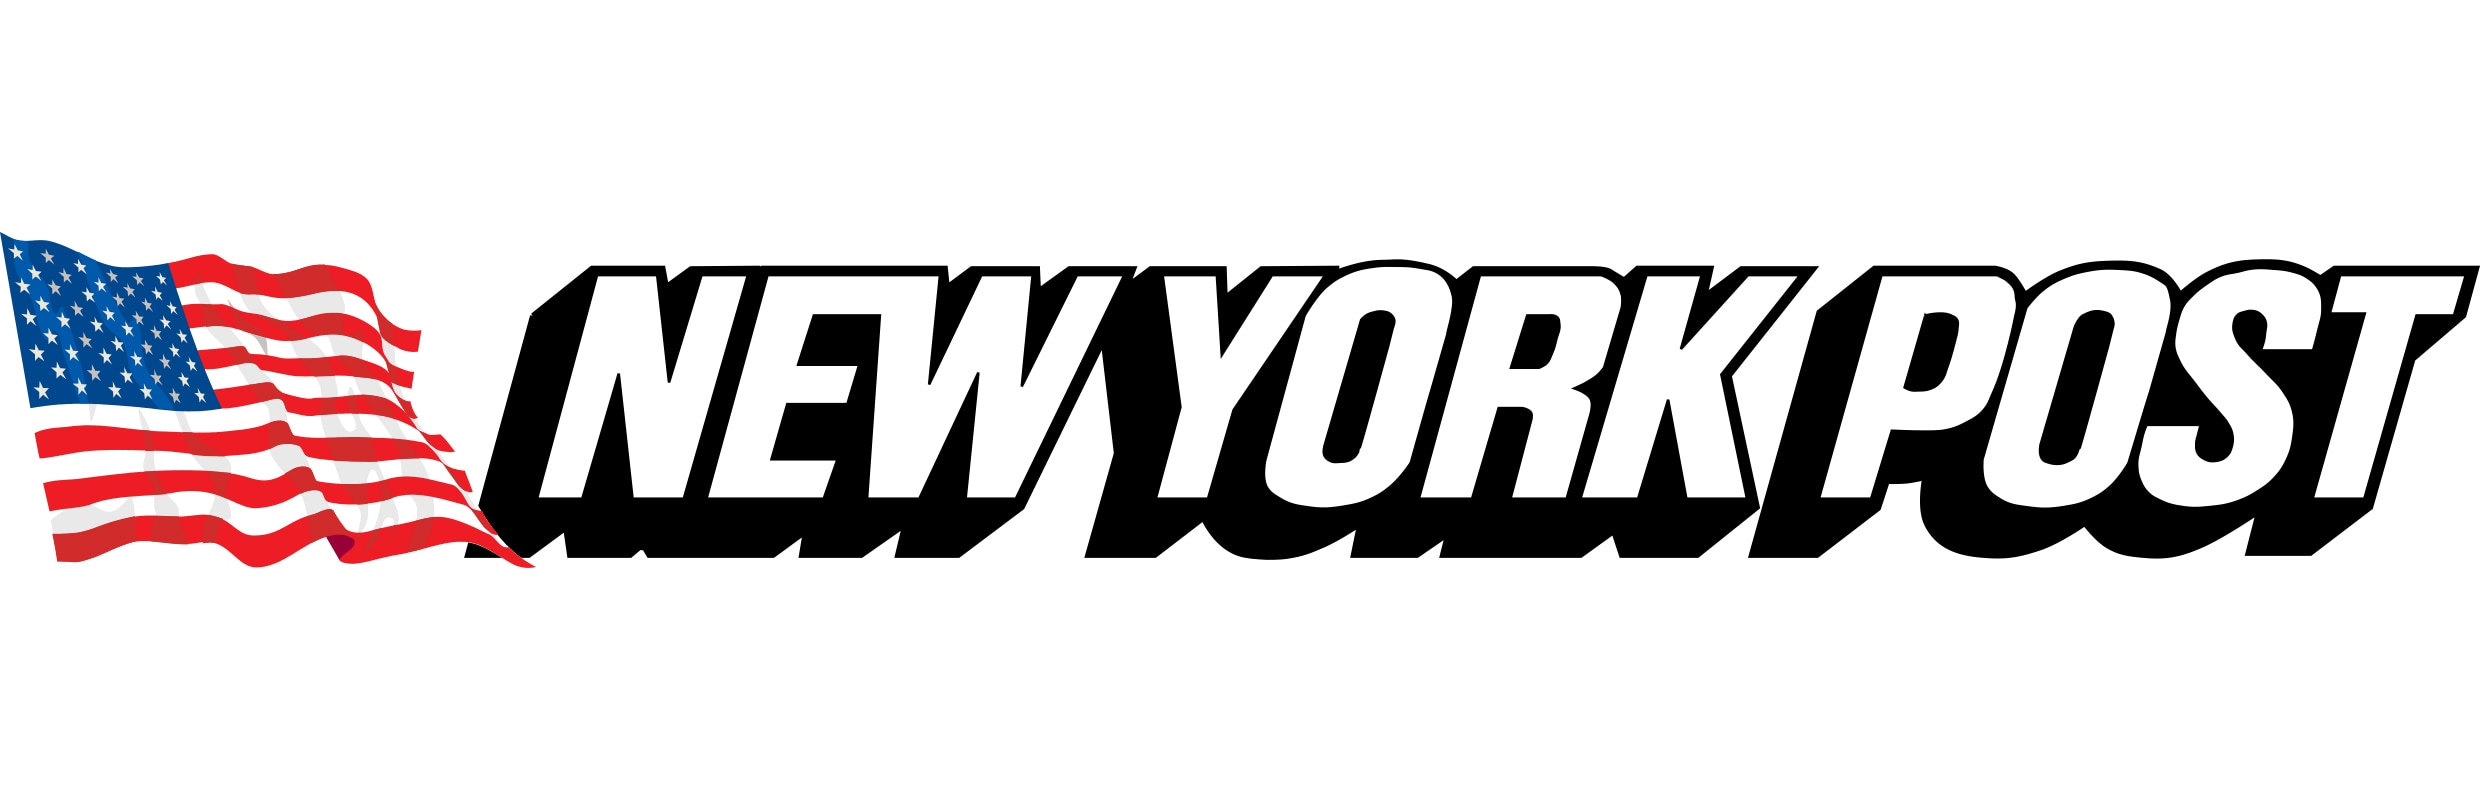 New york post selected